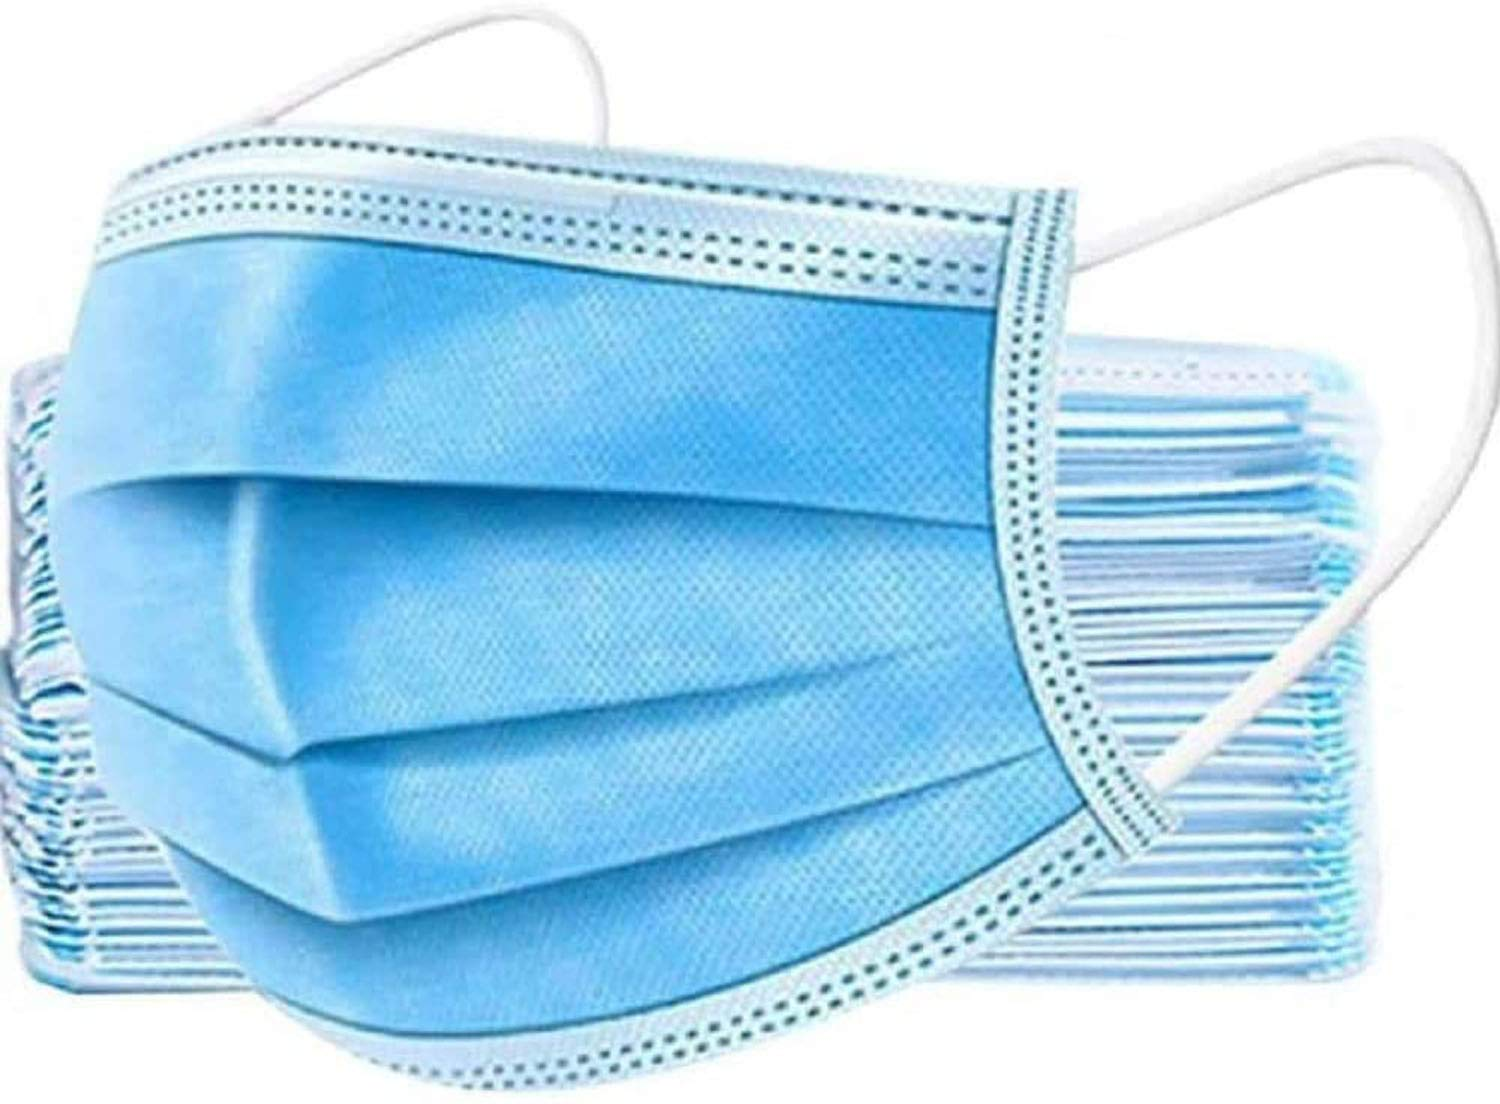 Disposable Face Masks in Blue - 50pcs/Box data-image-id=